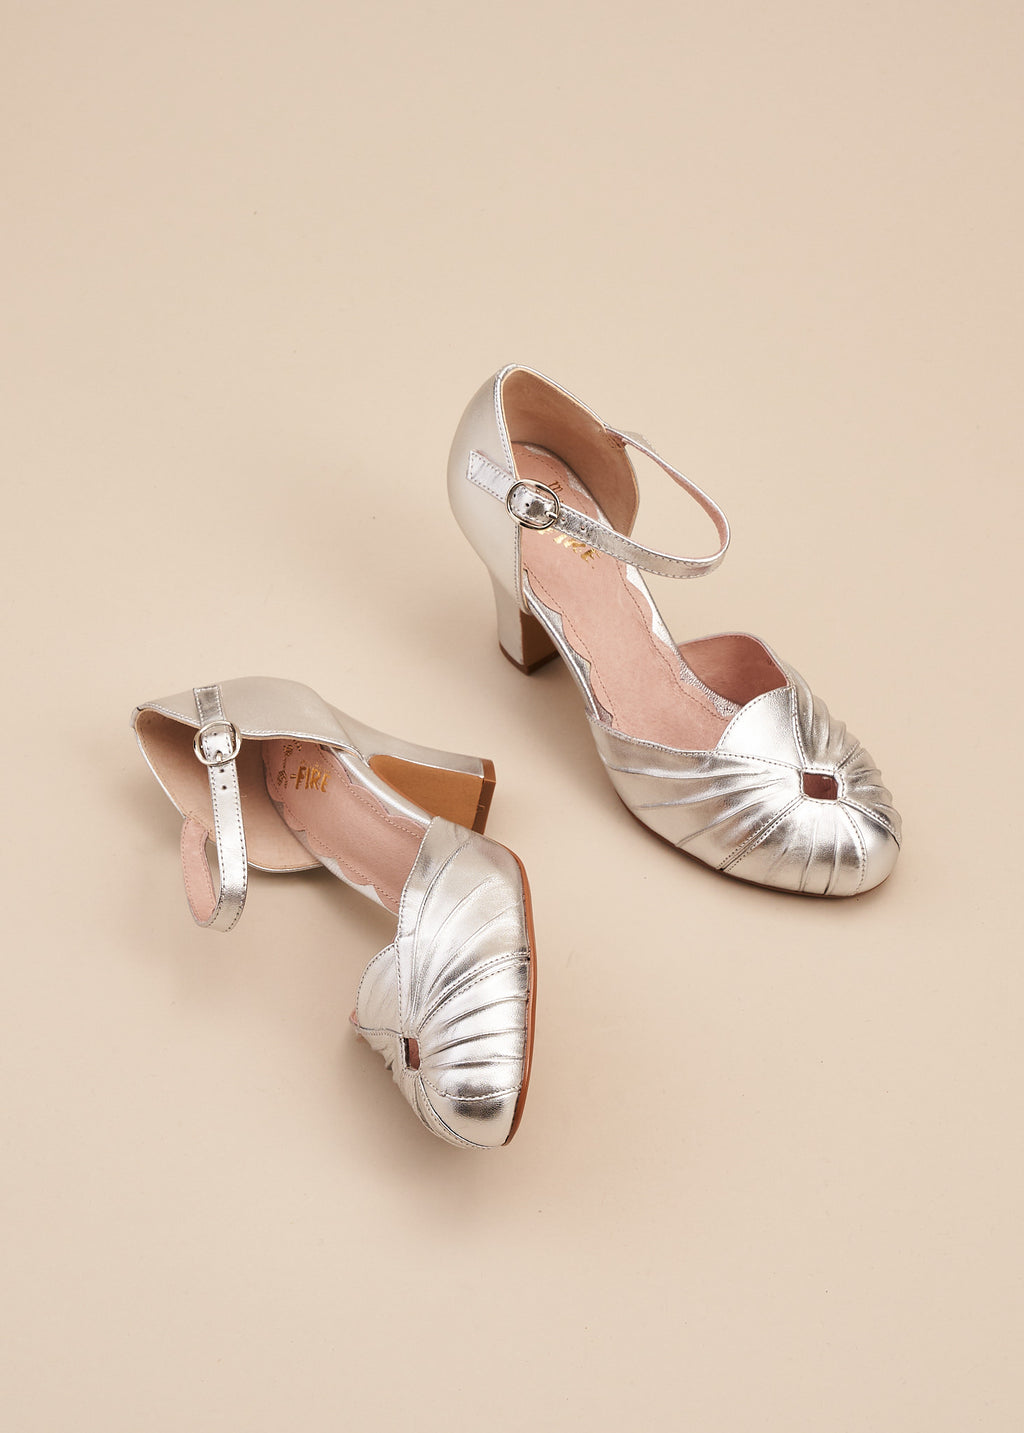 Amber in shiny silver metallic leather is a two part bar shoe with adjustable strap and 8 cm heel, bu Miss L Fire.  Vintage inspired, with delicate ruching on the toe. Perfect Bridal style.